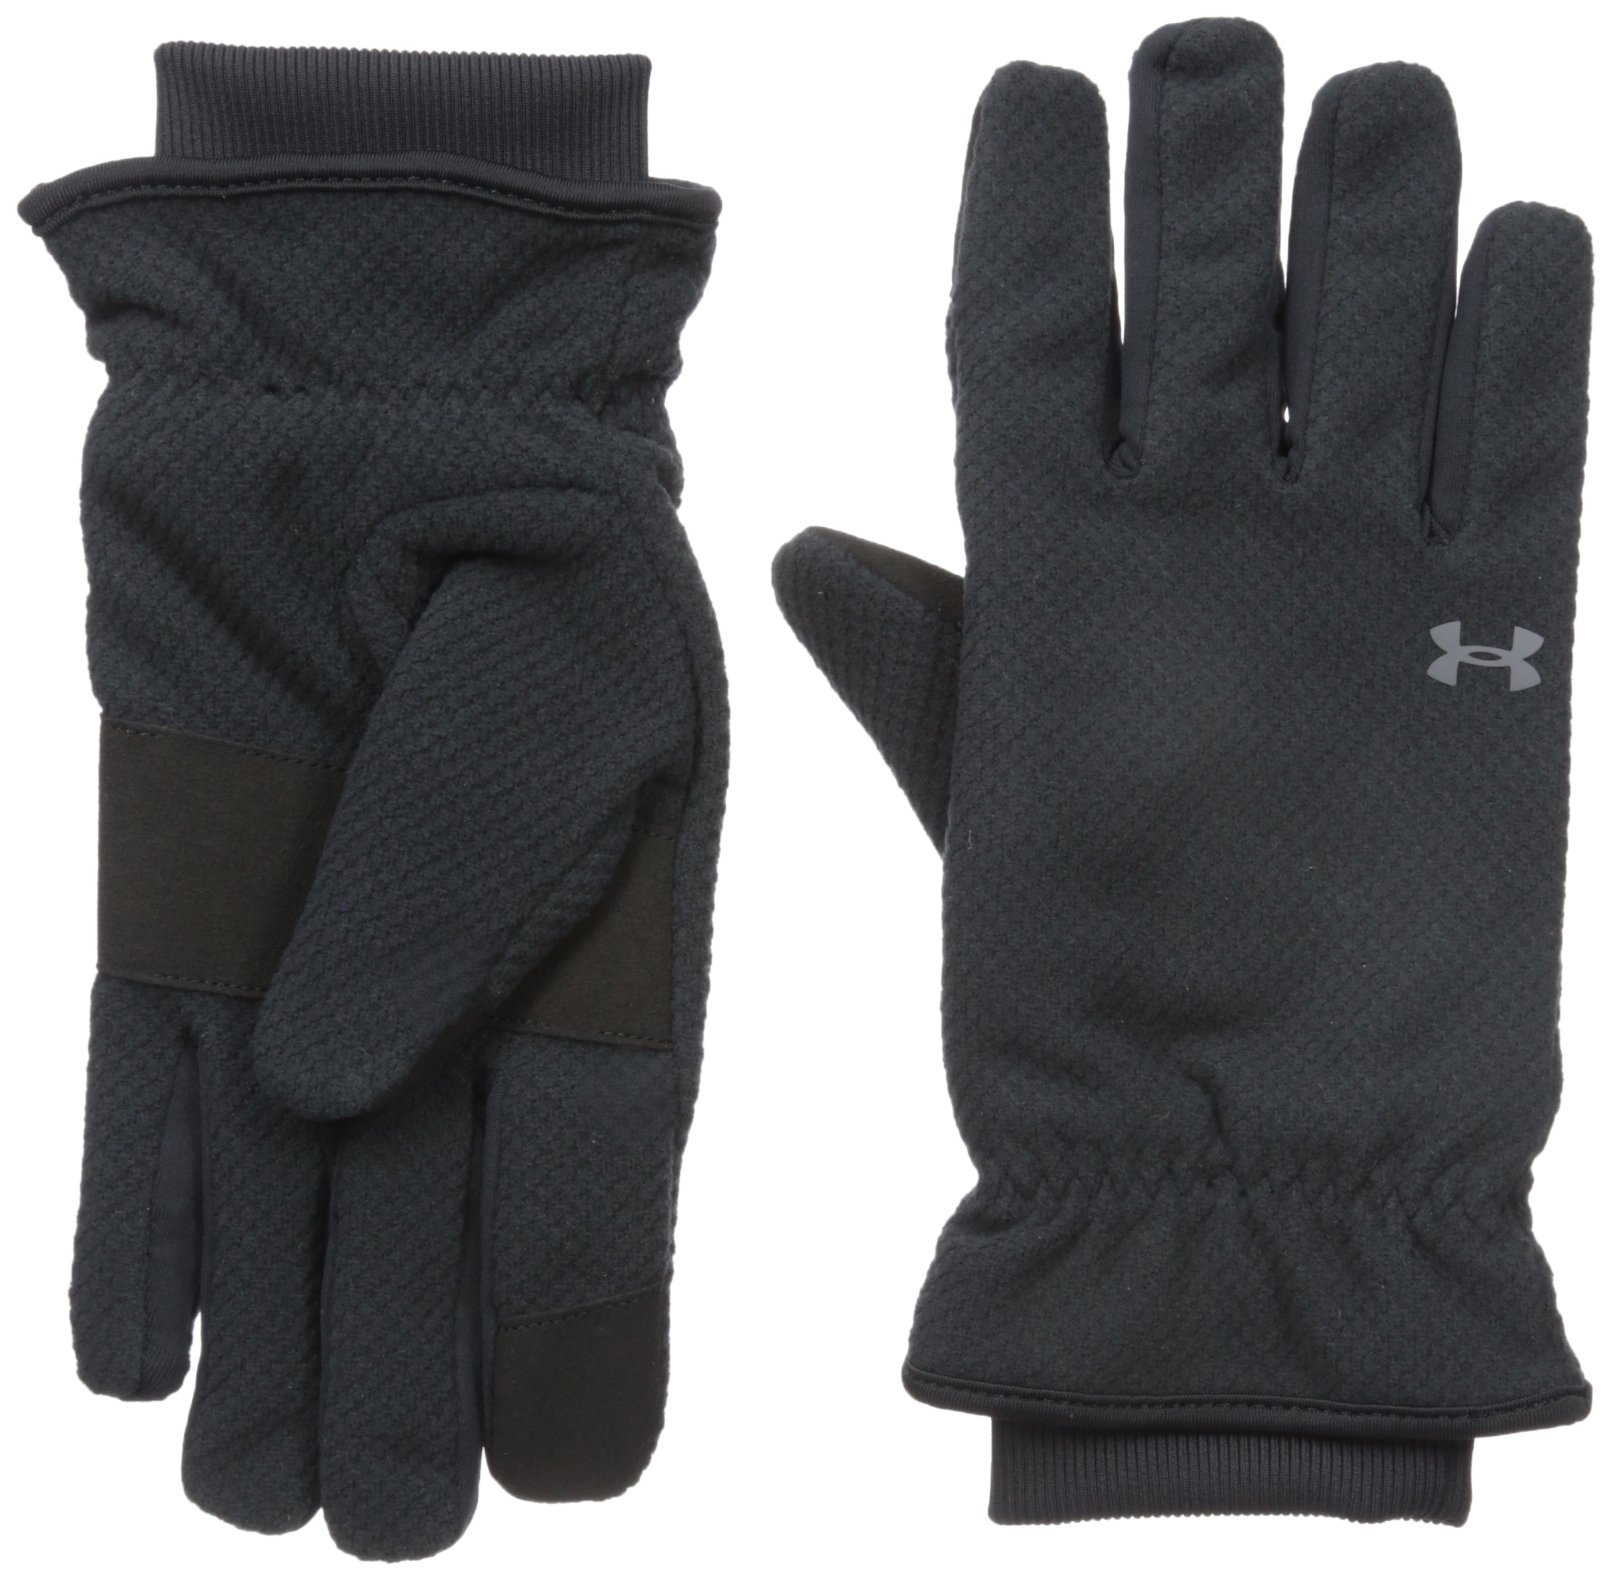 Under Armour Women's ColdGear Infrared Fleece Gloves, Black (001)/Rhino Gray, Large by Under Armour